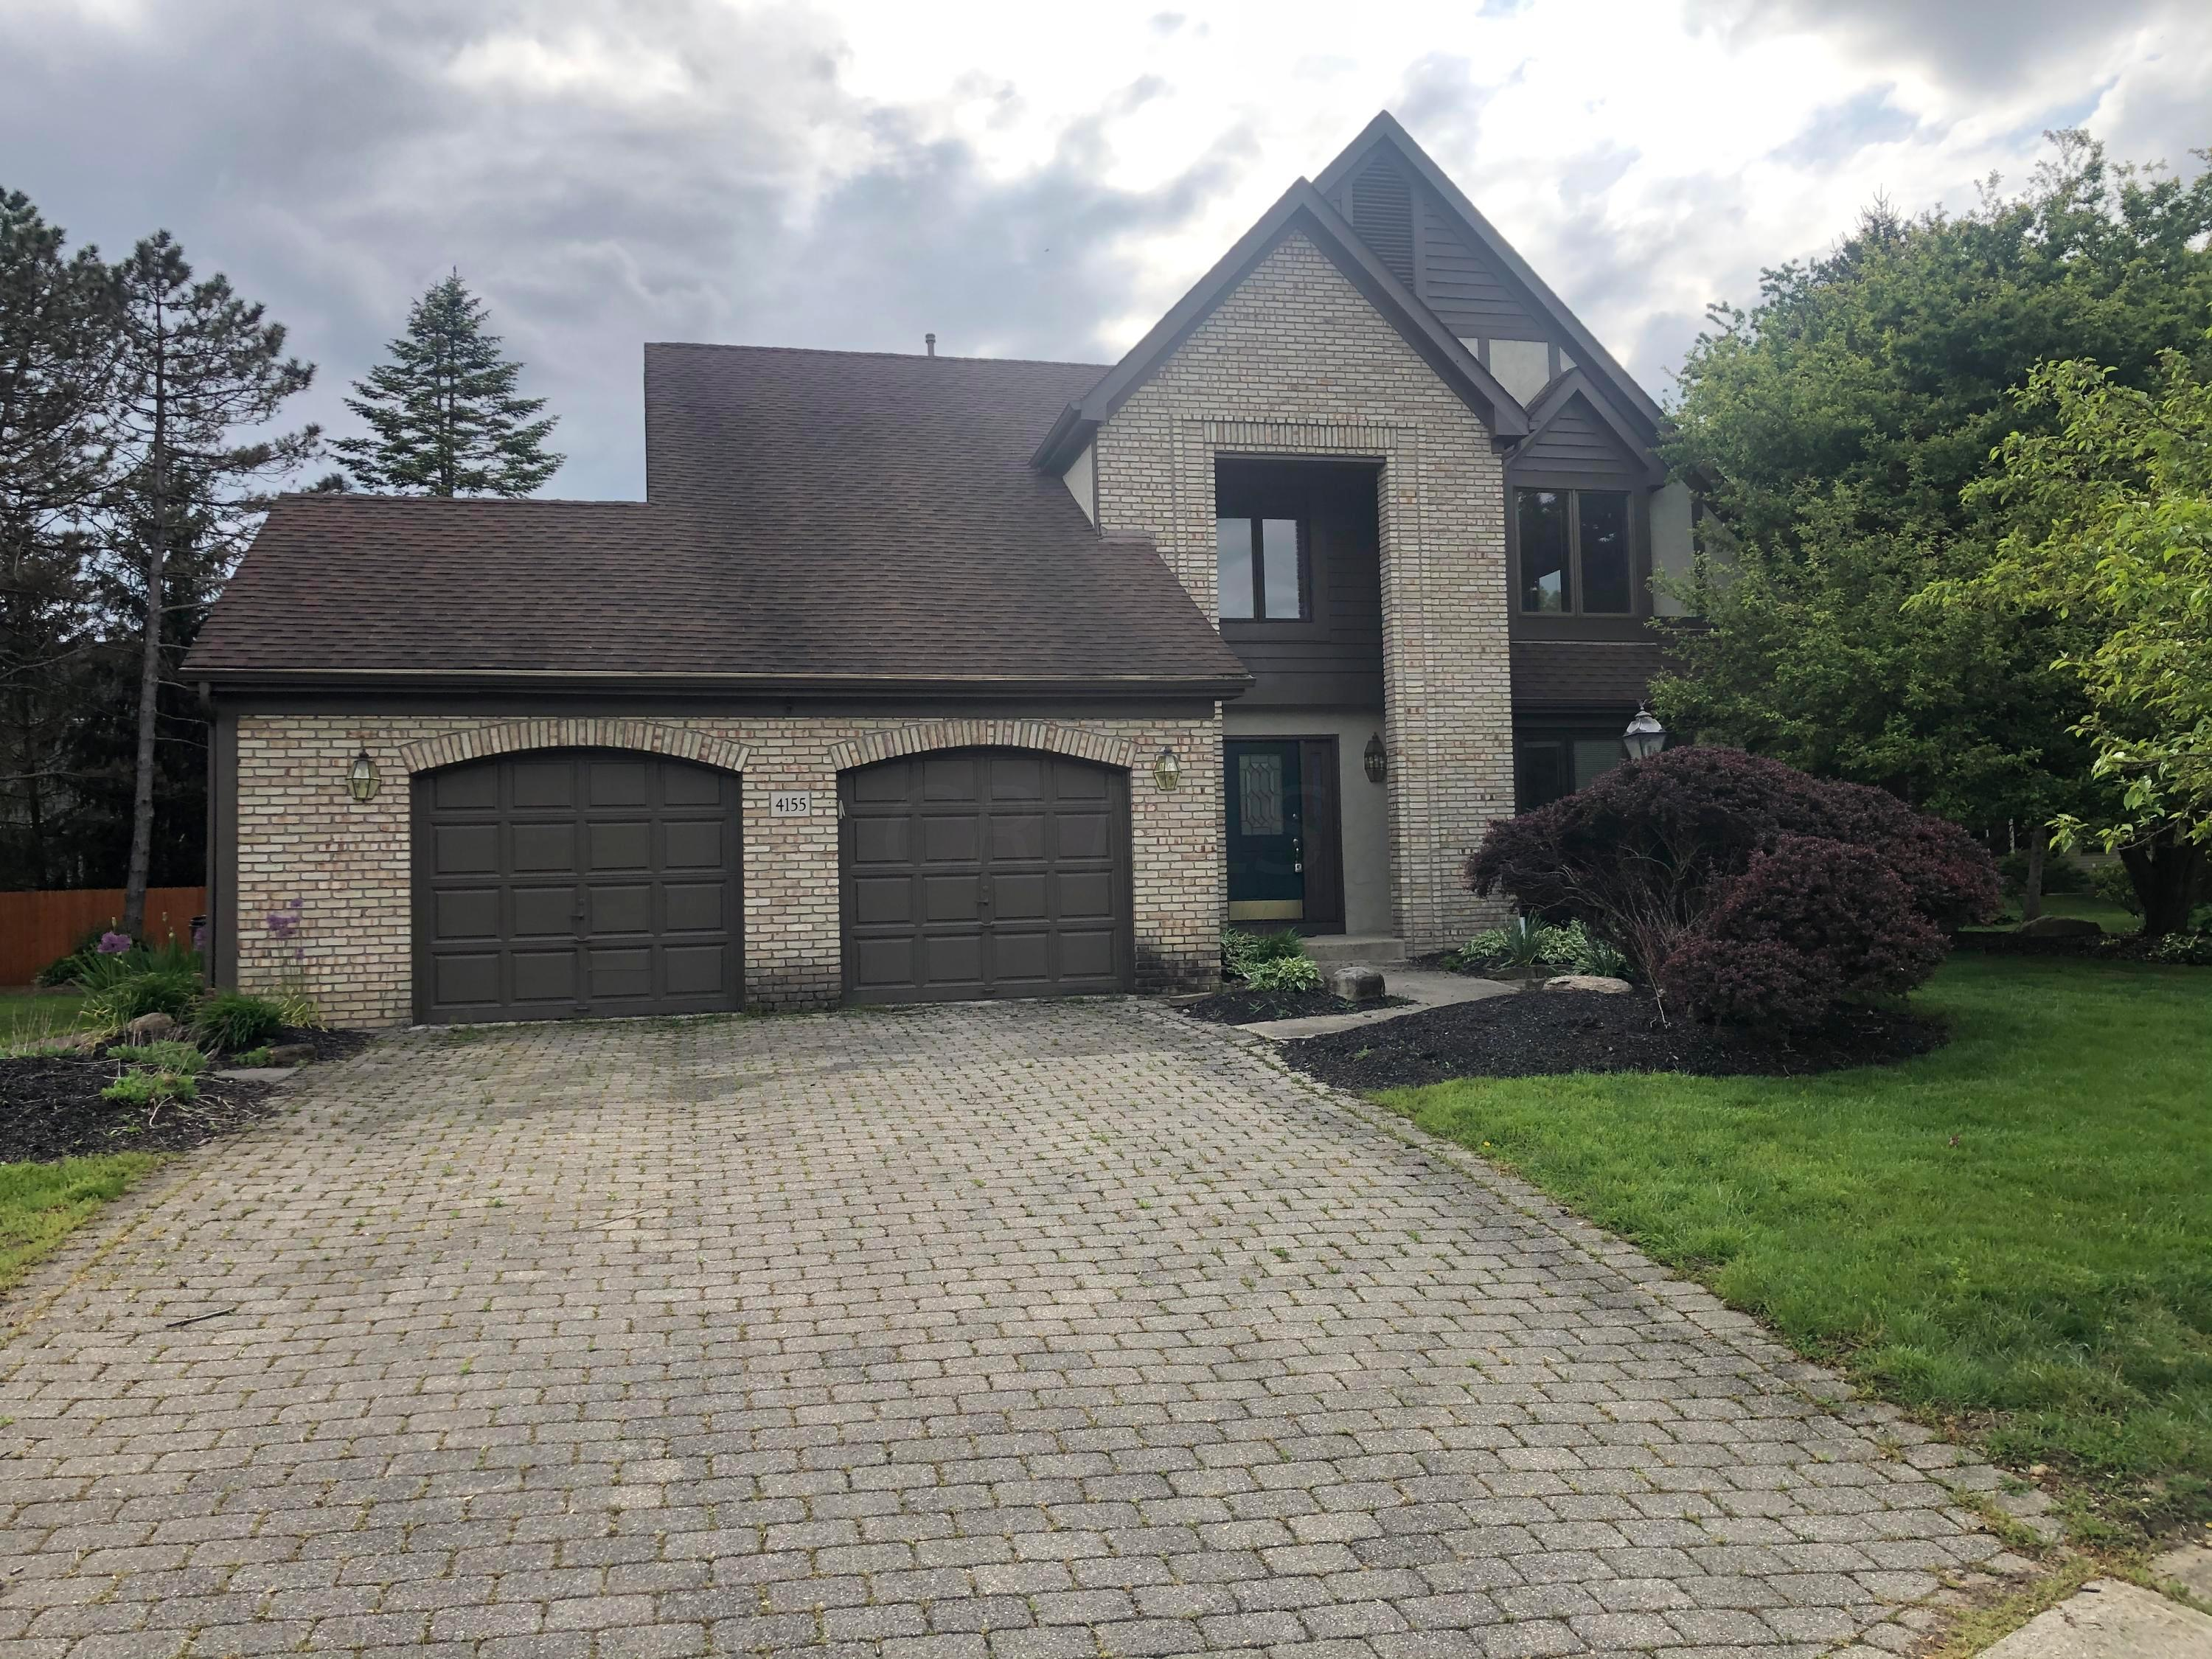 4155 Checkerberry, Hilliard, Ohio 43026, 4 Bedrooms Bedrooms, ,3 BathroomsBathrooms,Residential,For Sale,Checkerberry,220015271